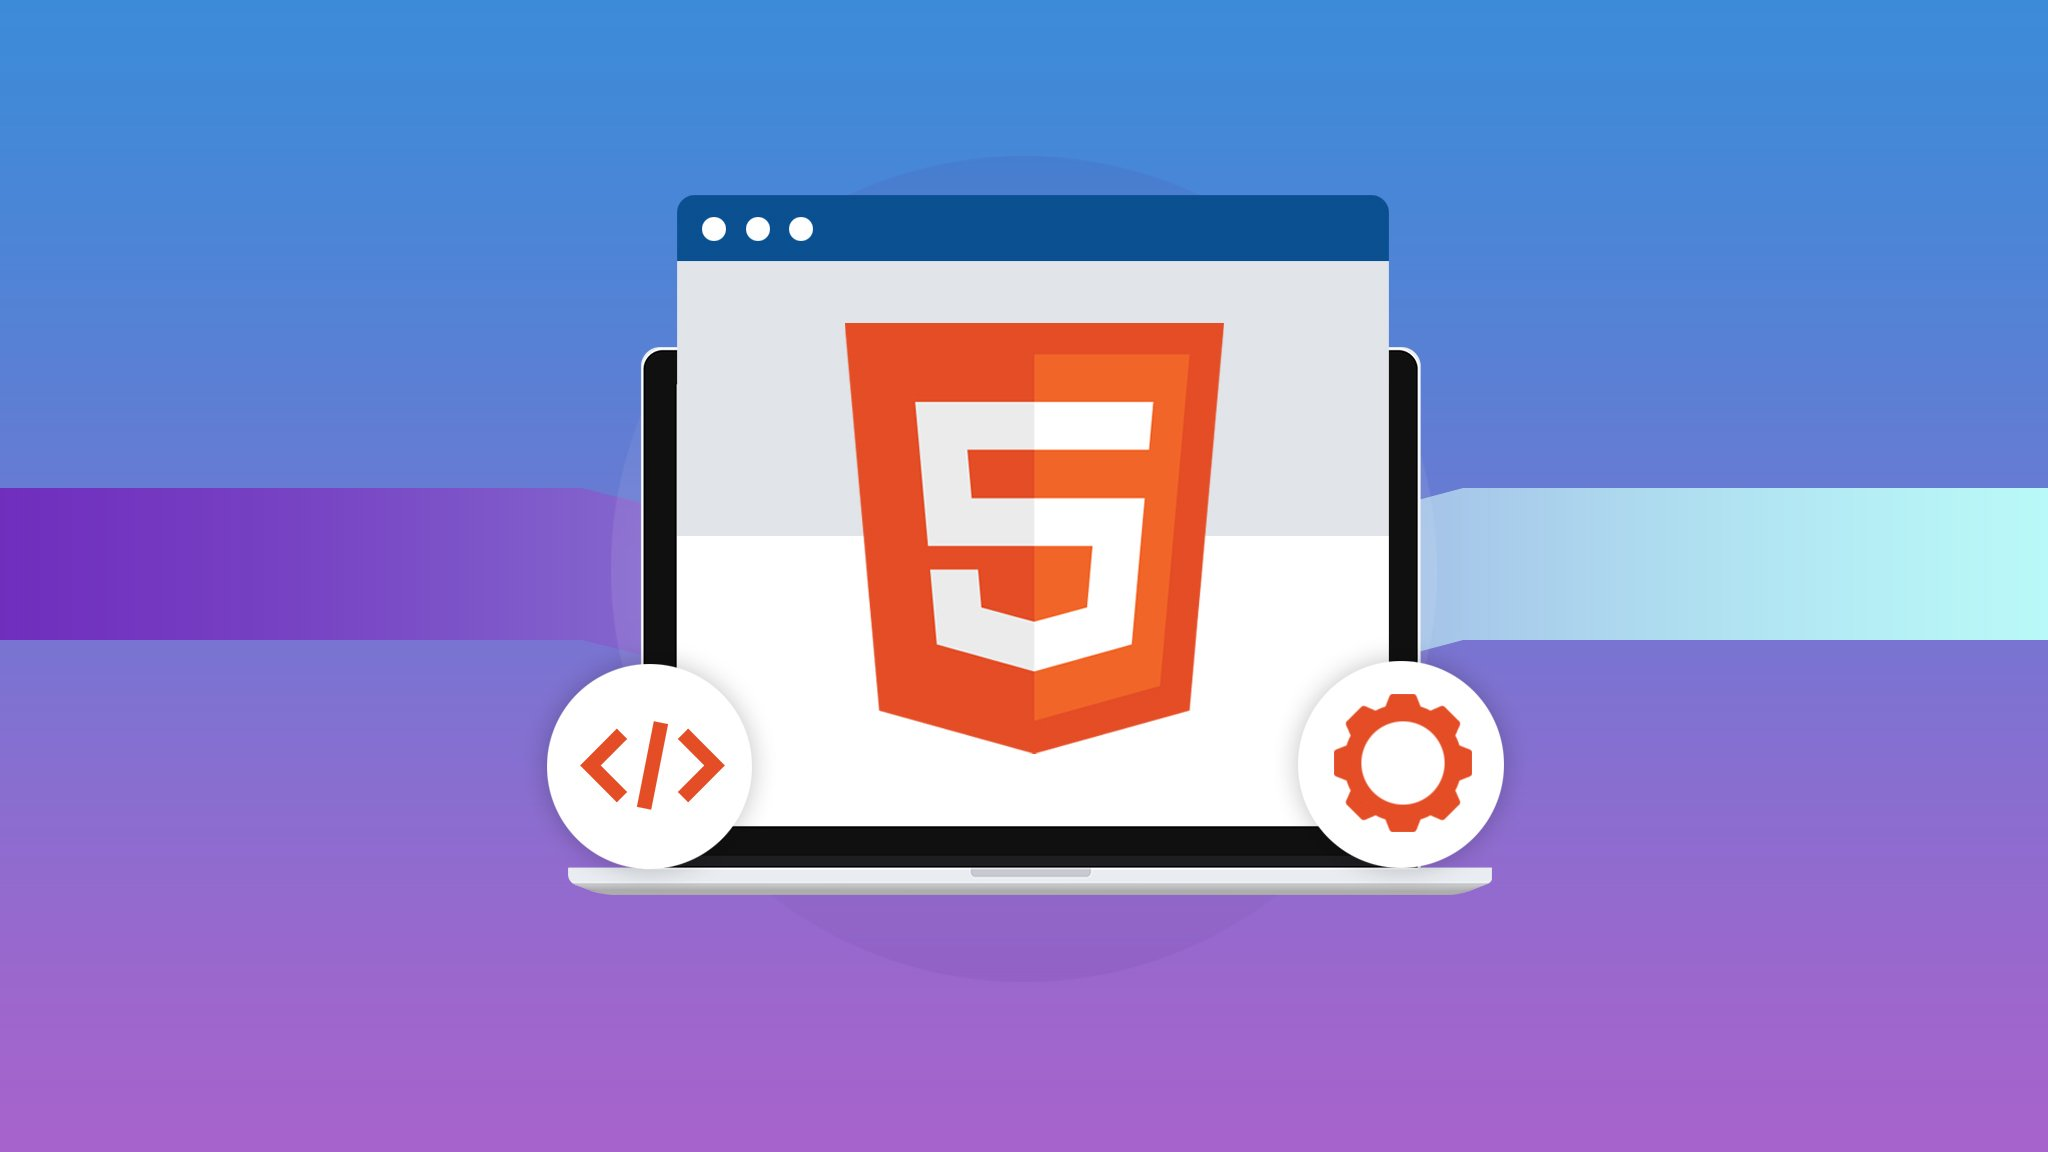 Learn HTML5 step-by-step from scratch